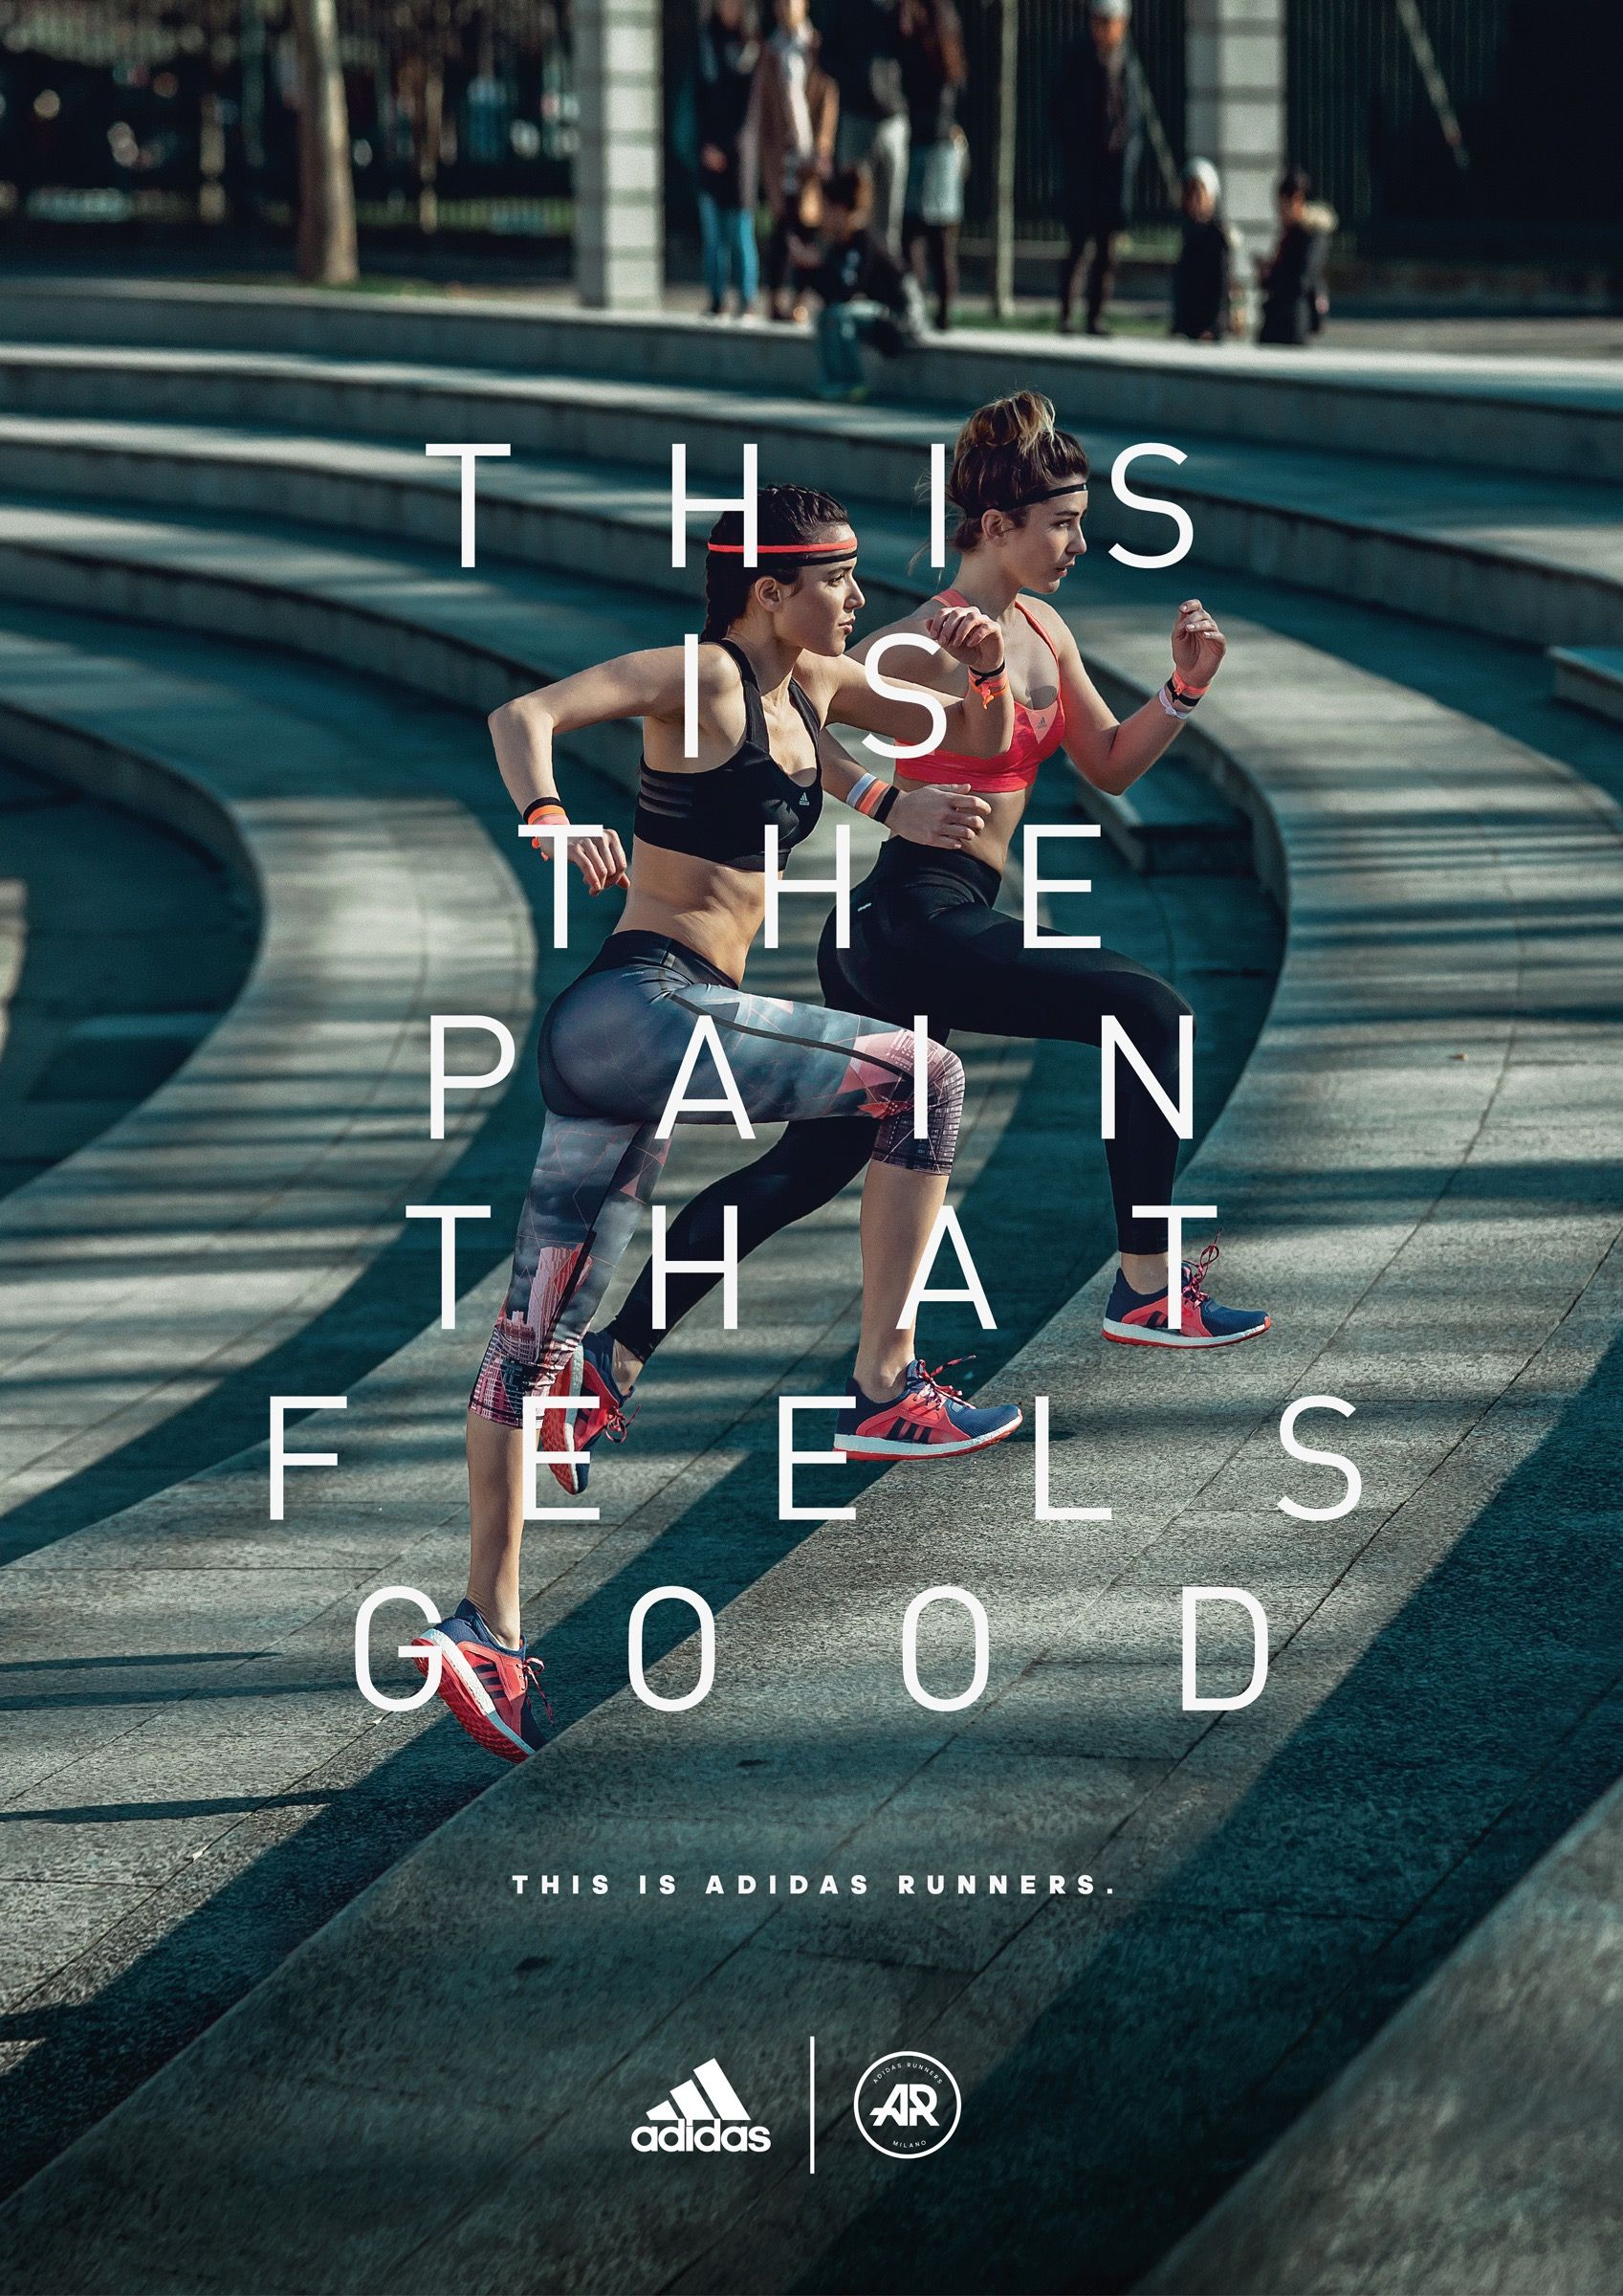 Print Advertisement Created By The Big Now Italy For Adidas Within The Category Fashion Sports Advertising Adidas Runners Adidas Ad